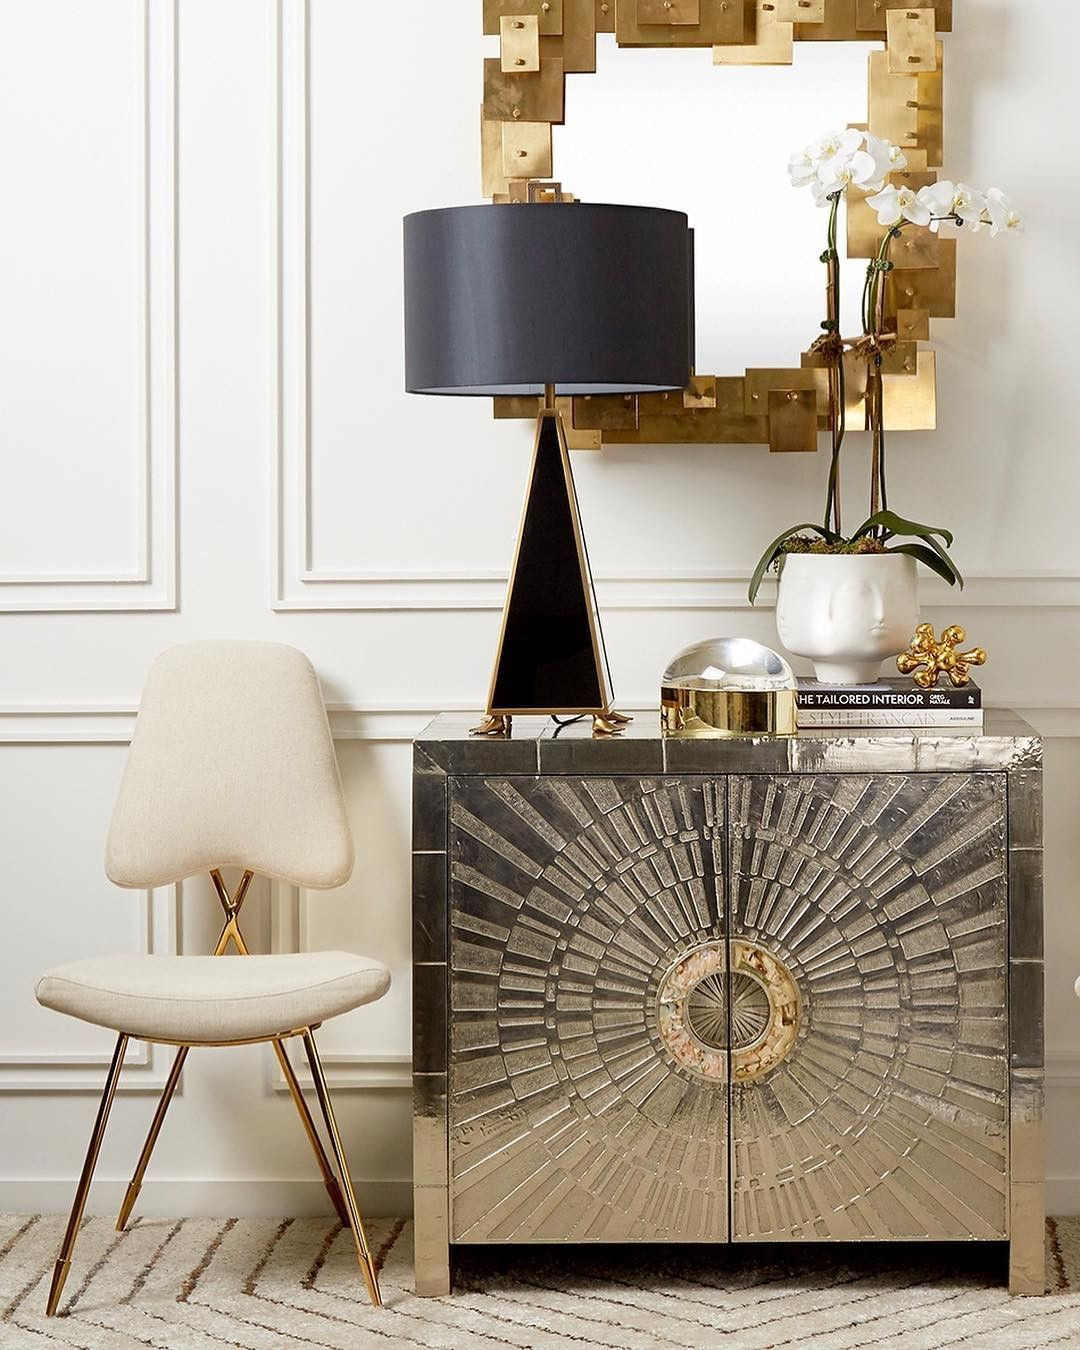 Golden Glam ✨! Johnathan Adler has done it again! #gold #glamourous #entrywaydecor #humpday🐫 #Re Panoly @jonathanadler